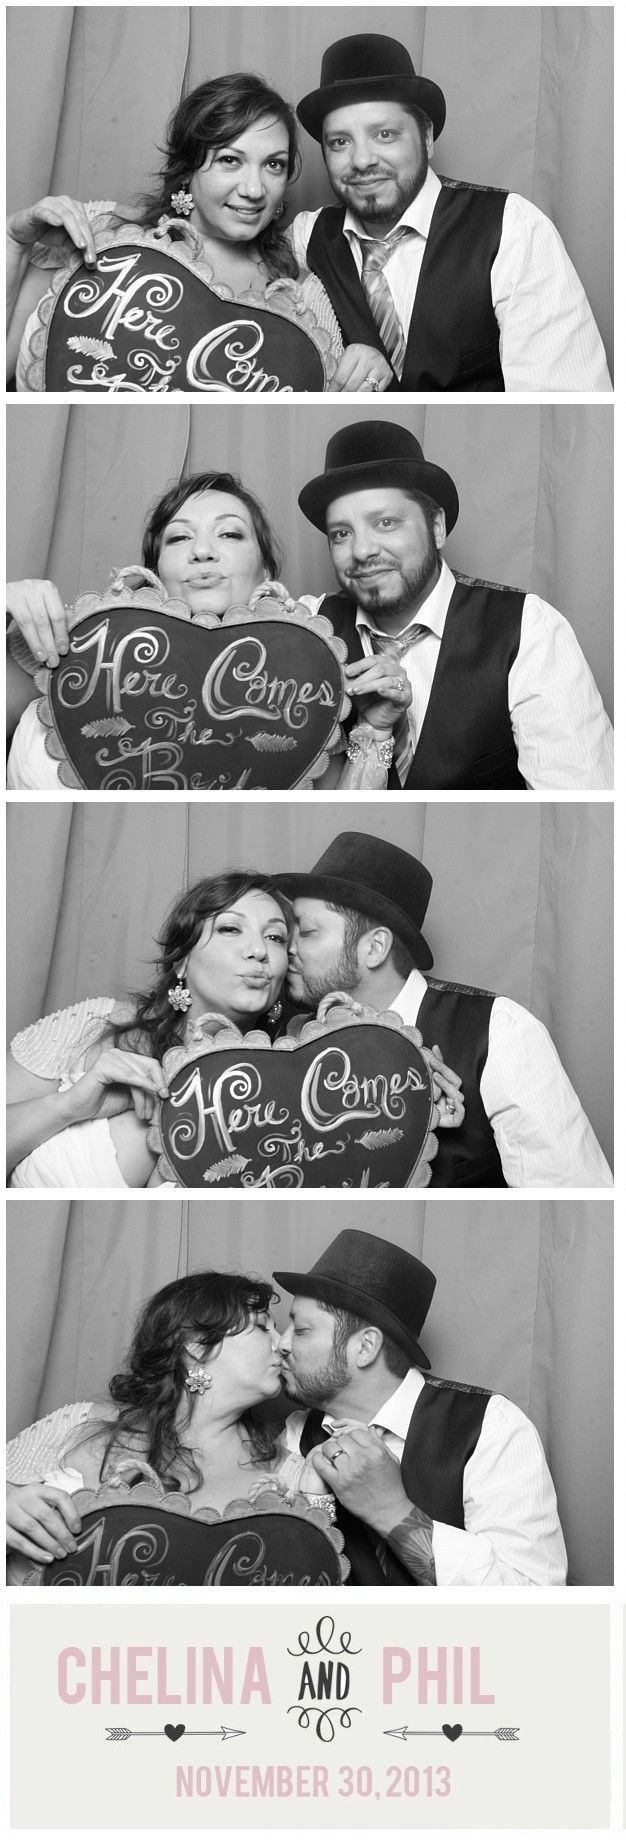 Chelina Phil Best Of Mobile Photobooth Losangeles Wedding Love The